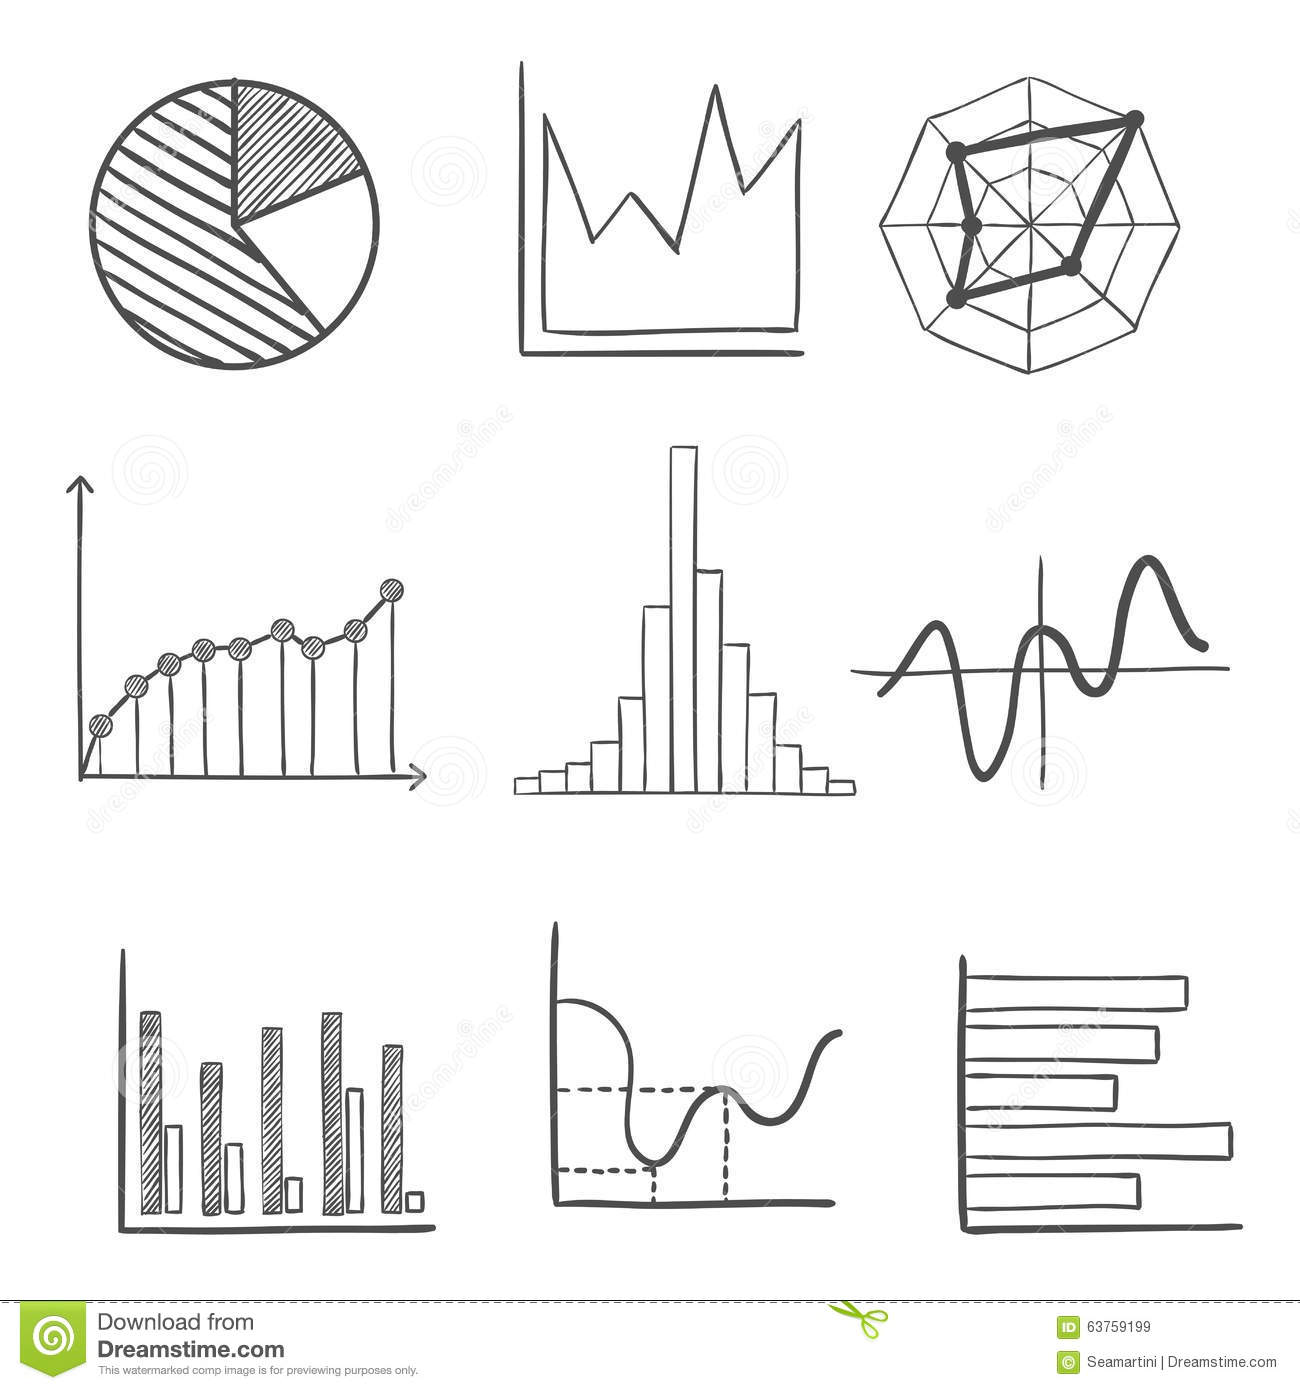 Sketched Business Graphs And Charts Stock Vector